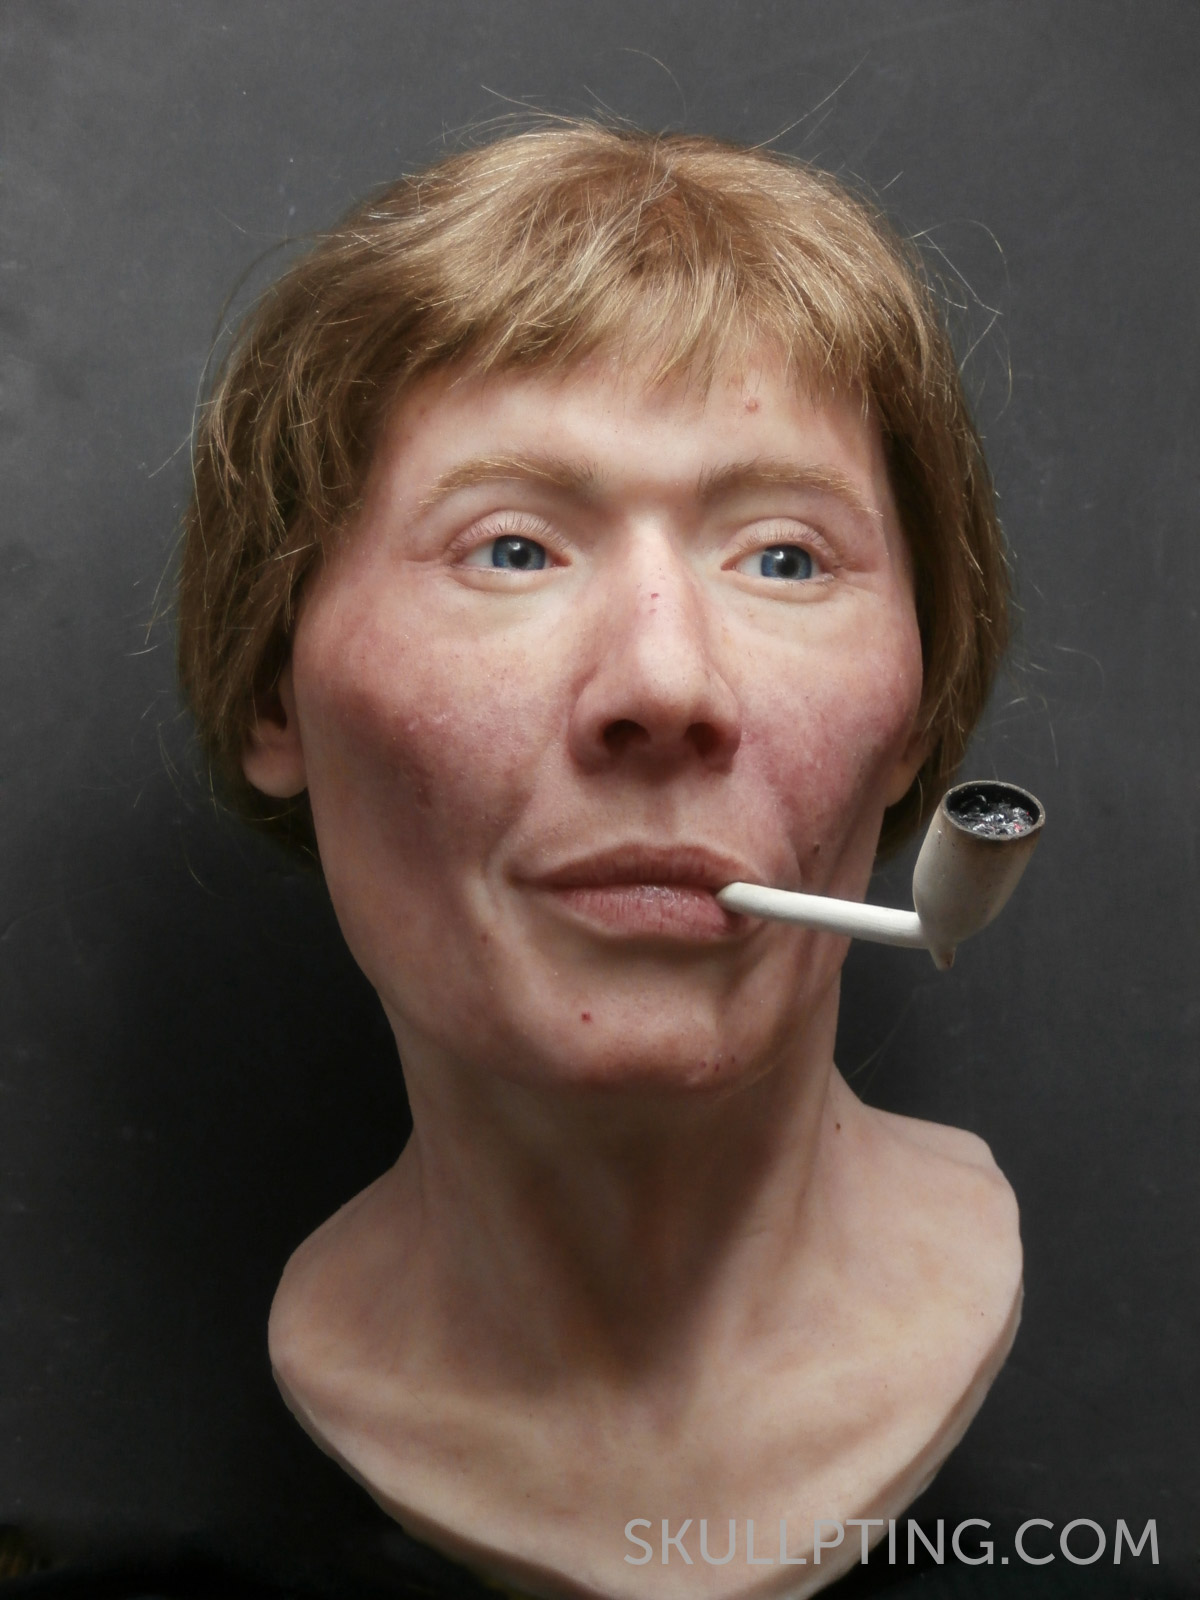 The finished facial reconstruction.